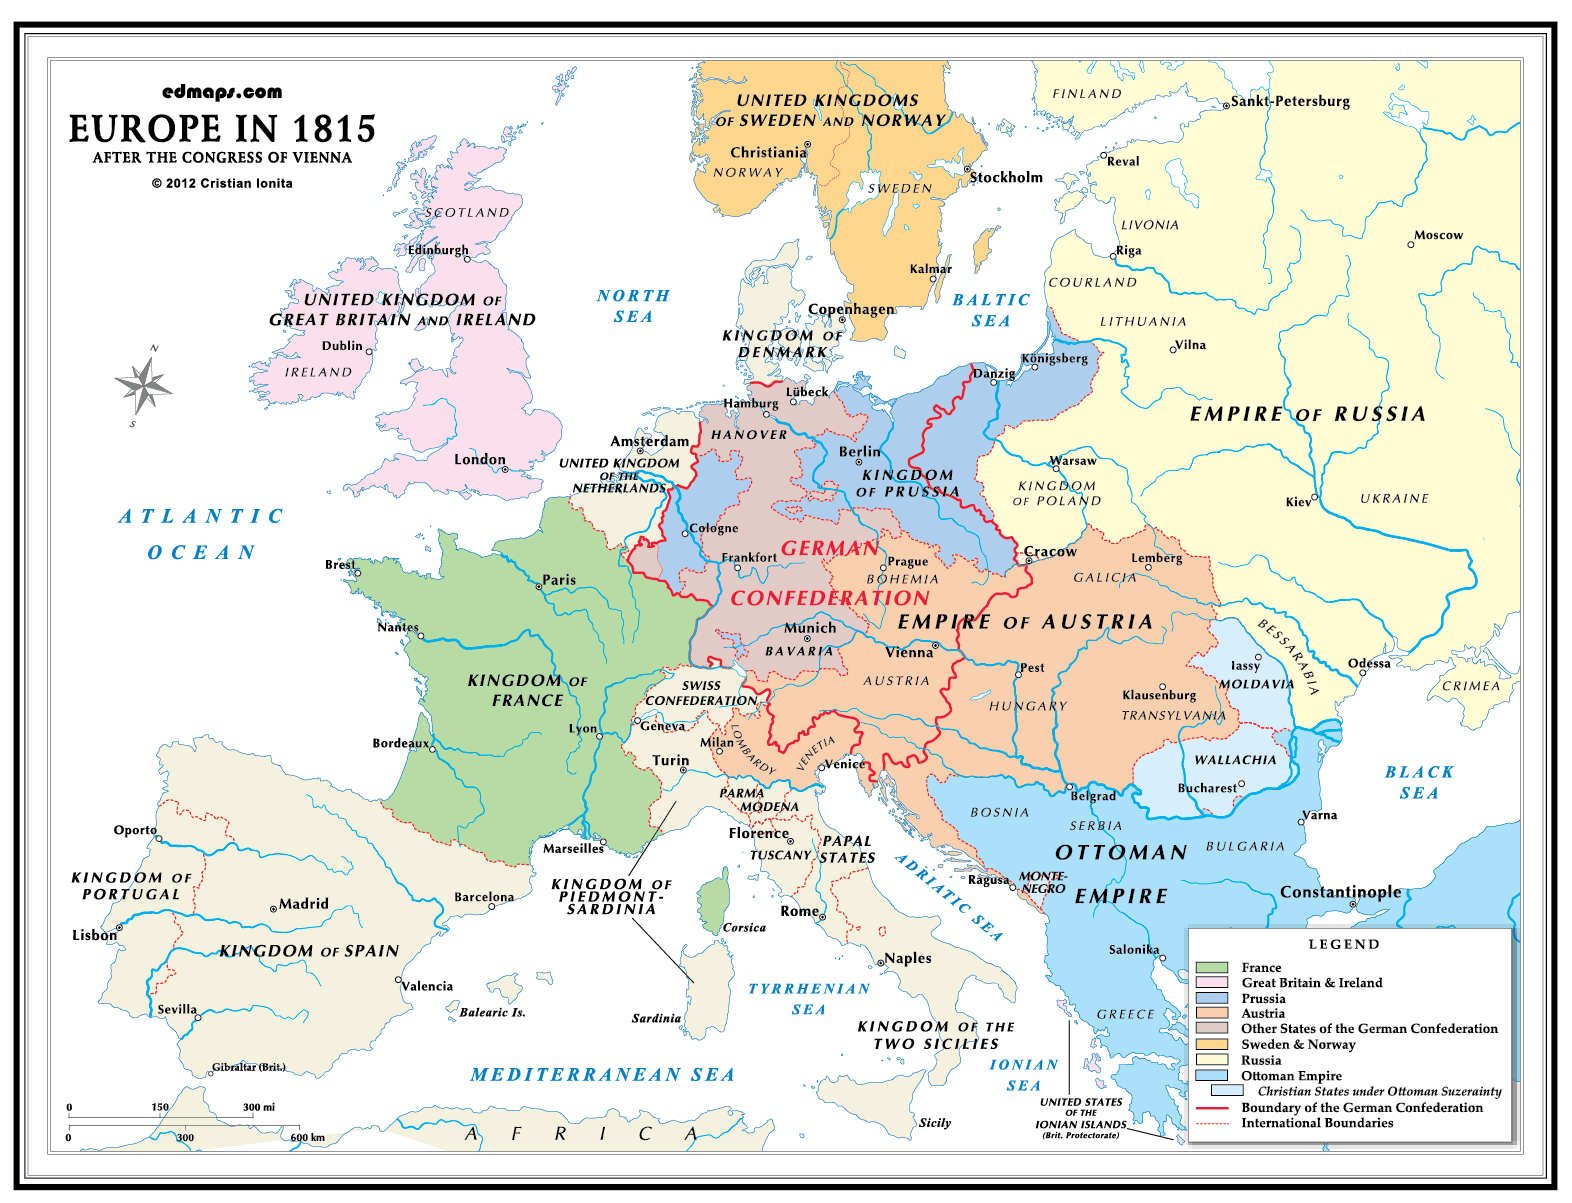 Westphalia germany in 1830 google search geneaolgy pinterest map of europe 1648 after the treaty of westphalia gumiabroncs Image collections